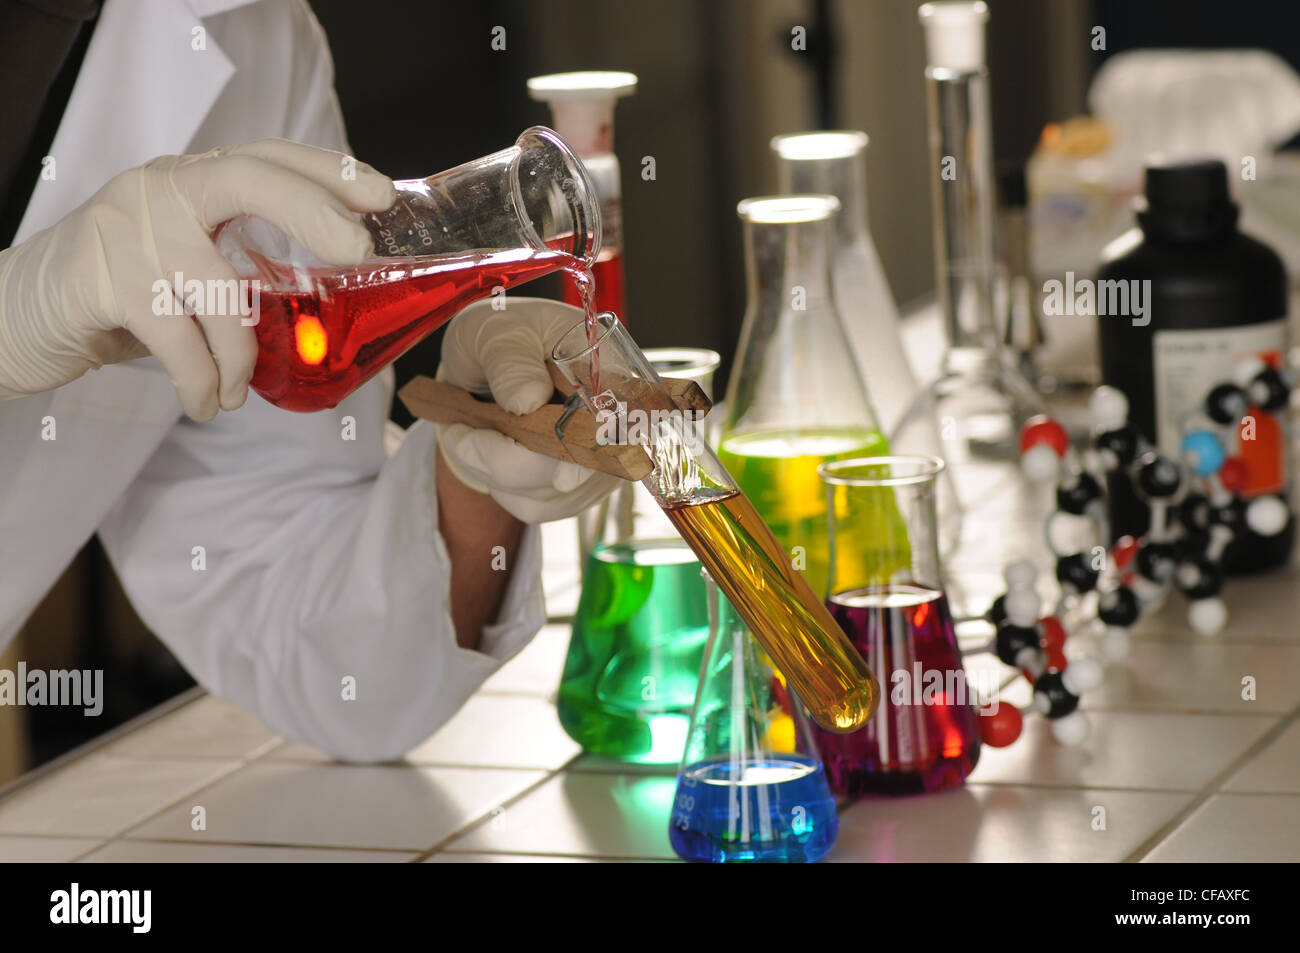 Man, research, teacher, chemistry, lab, formulae, experiment, science, school, education, chemicals - Stock Image